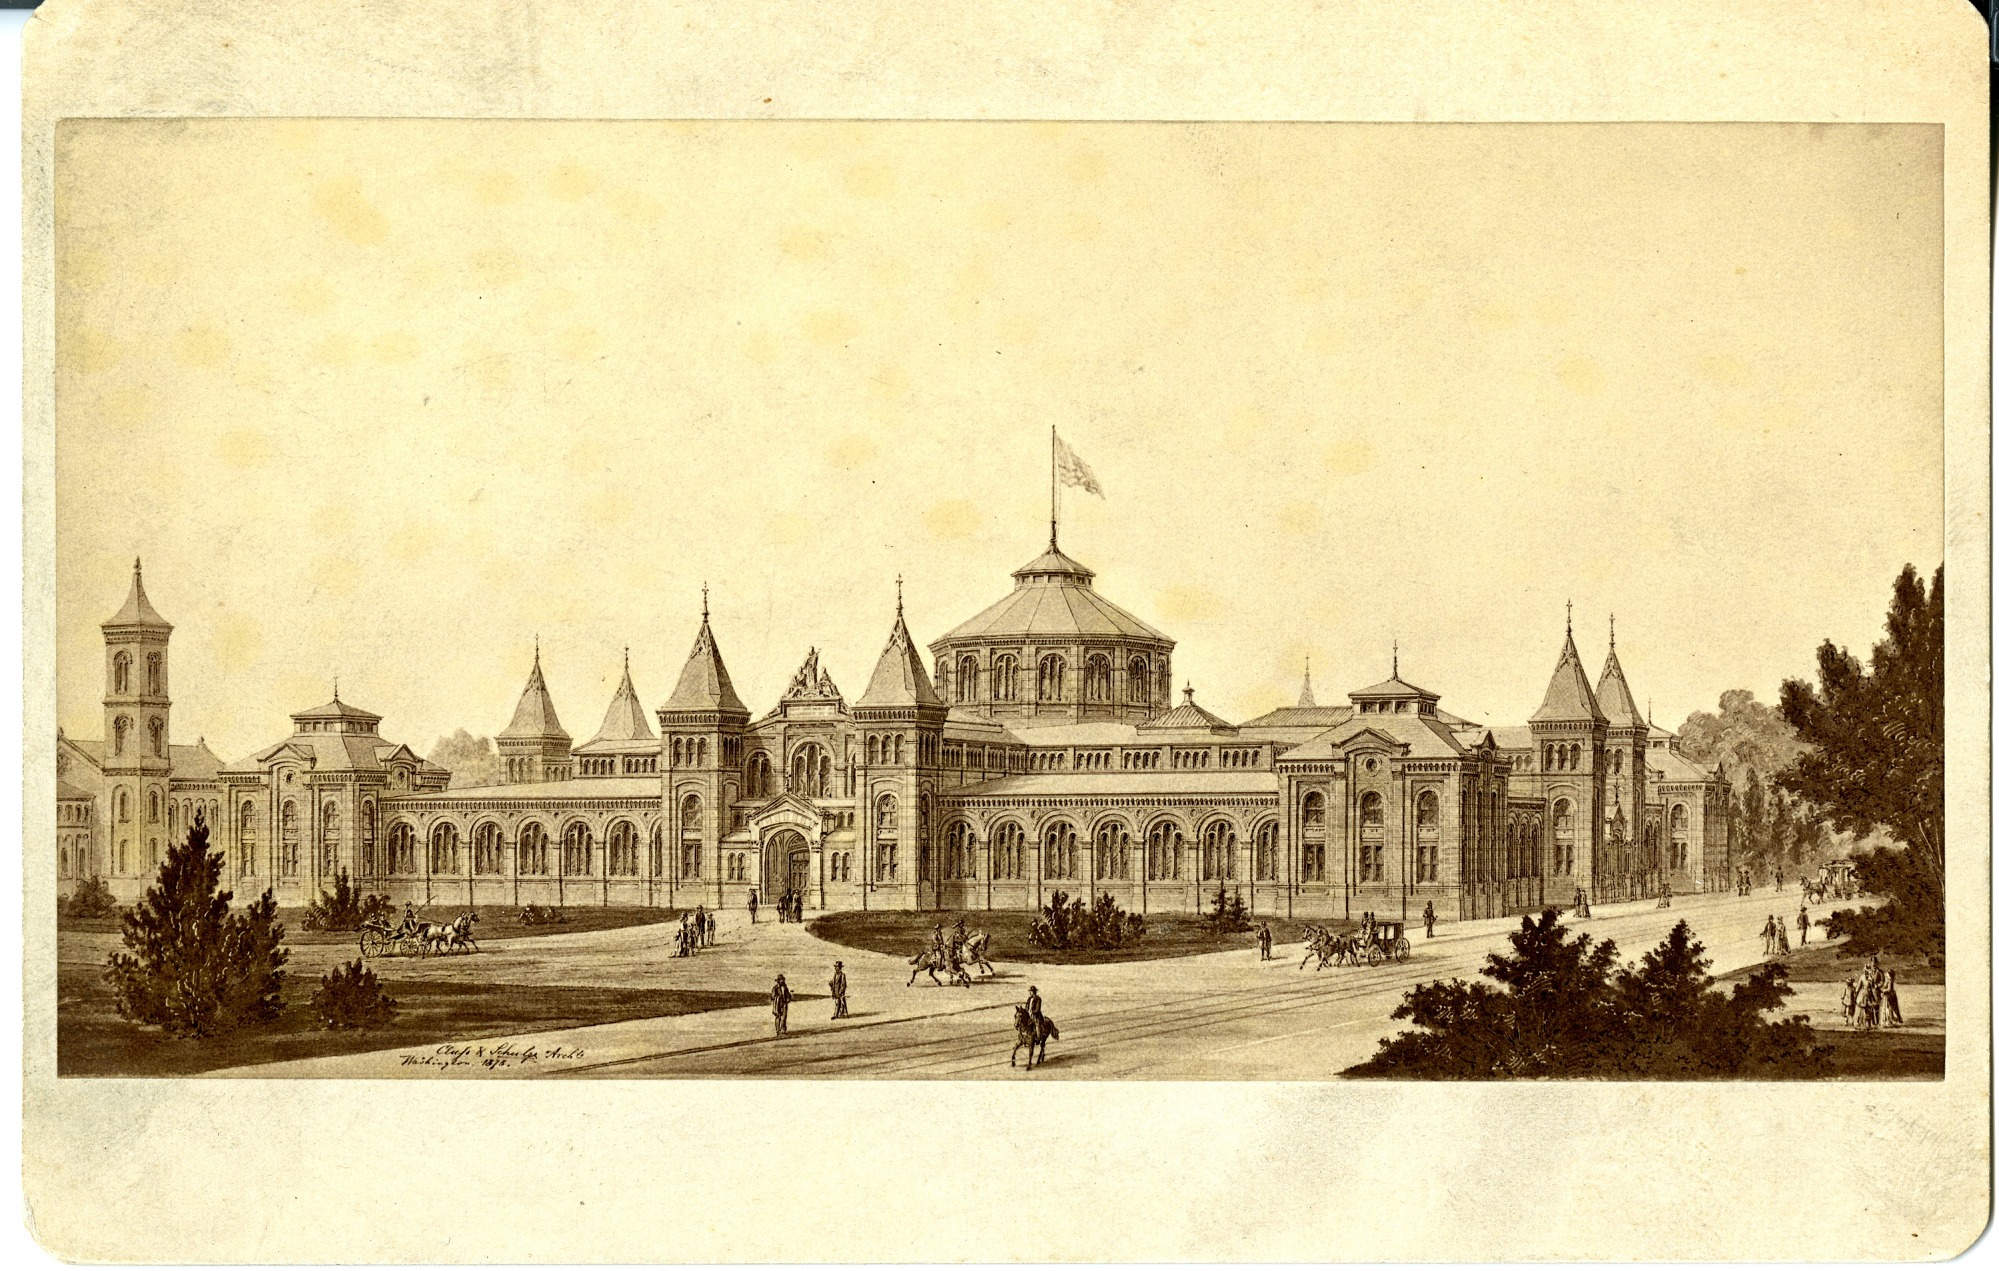 Arts & Industries Building, Rendering 1878